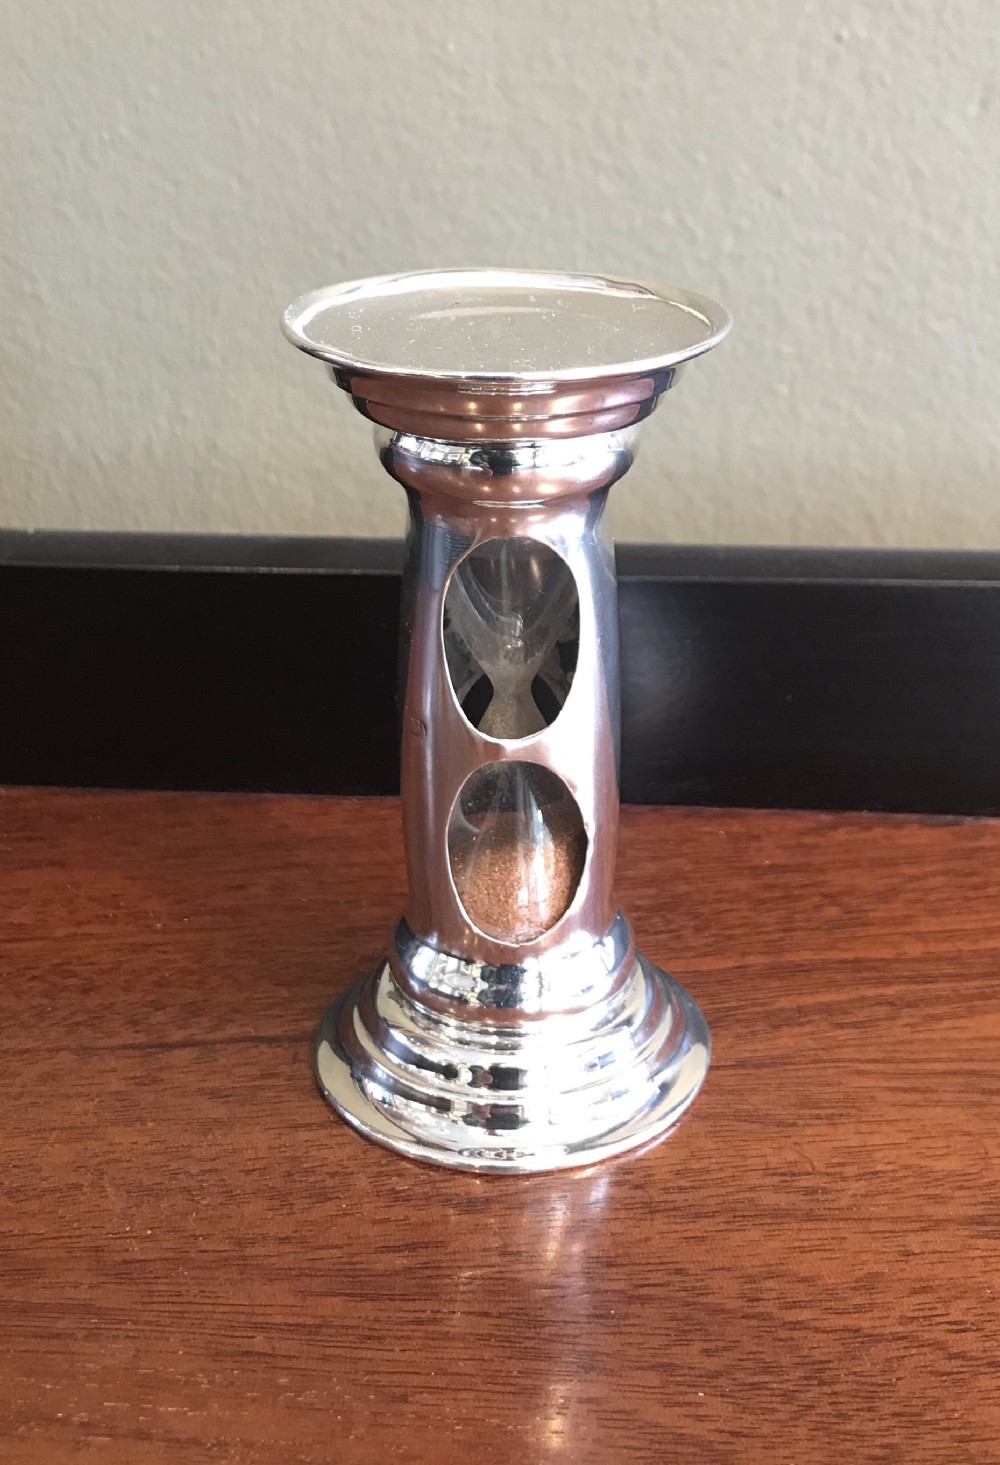 edwardian silver egg timer by george unite 1903